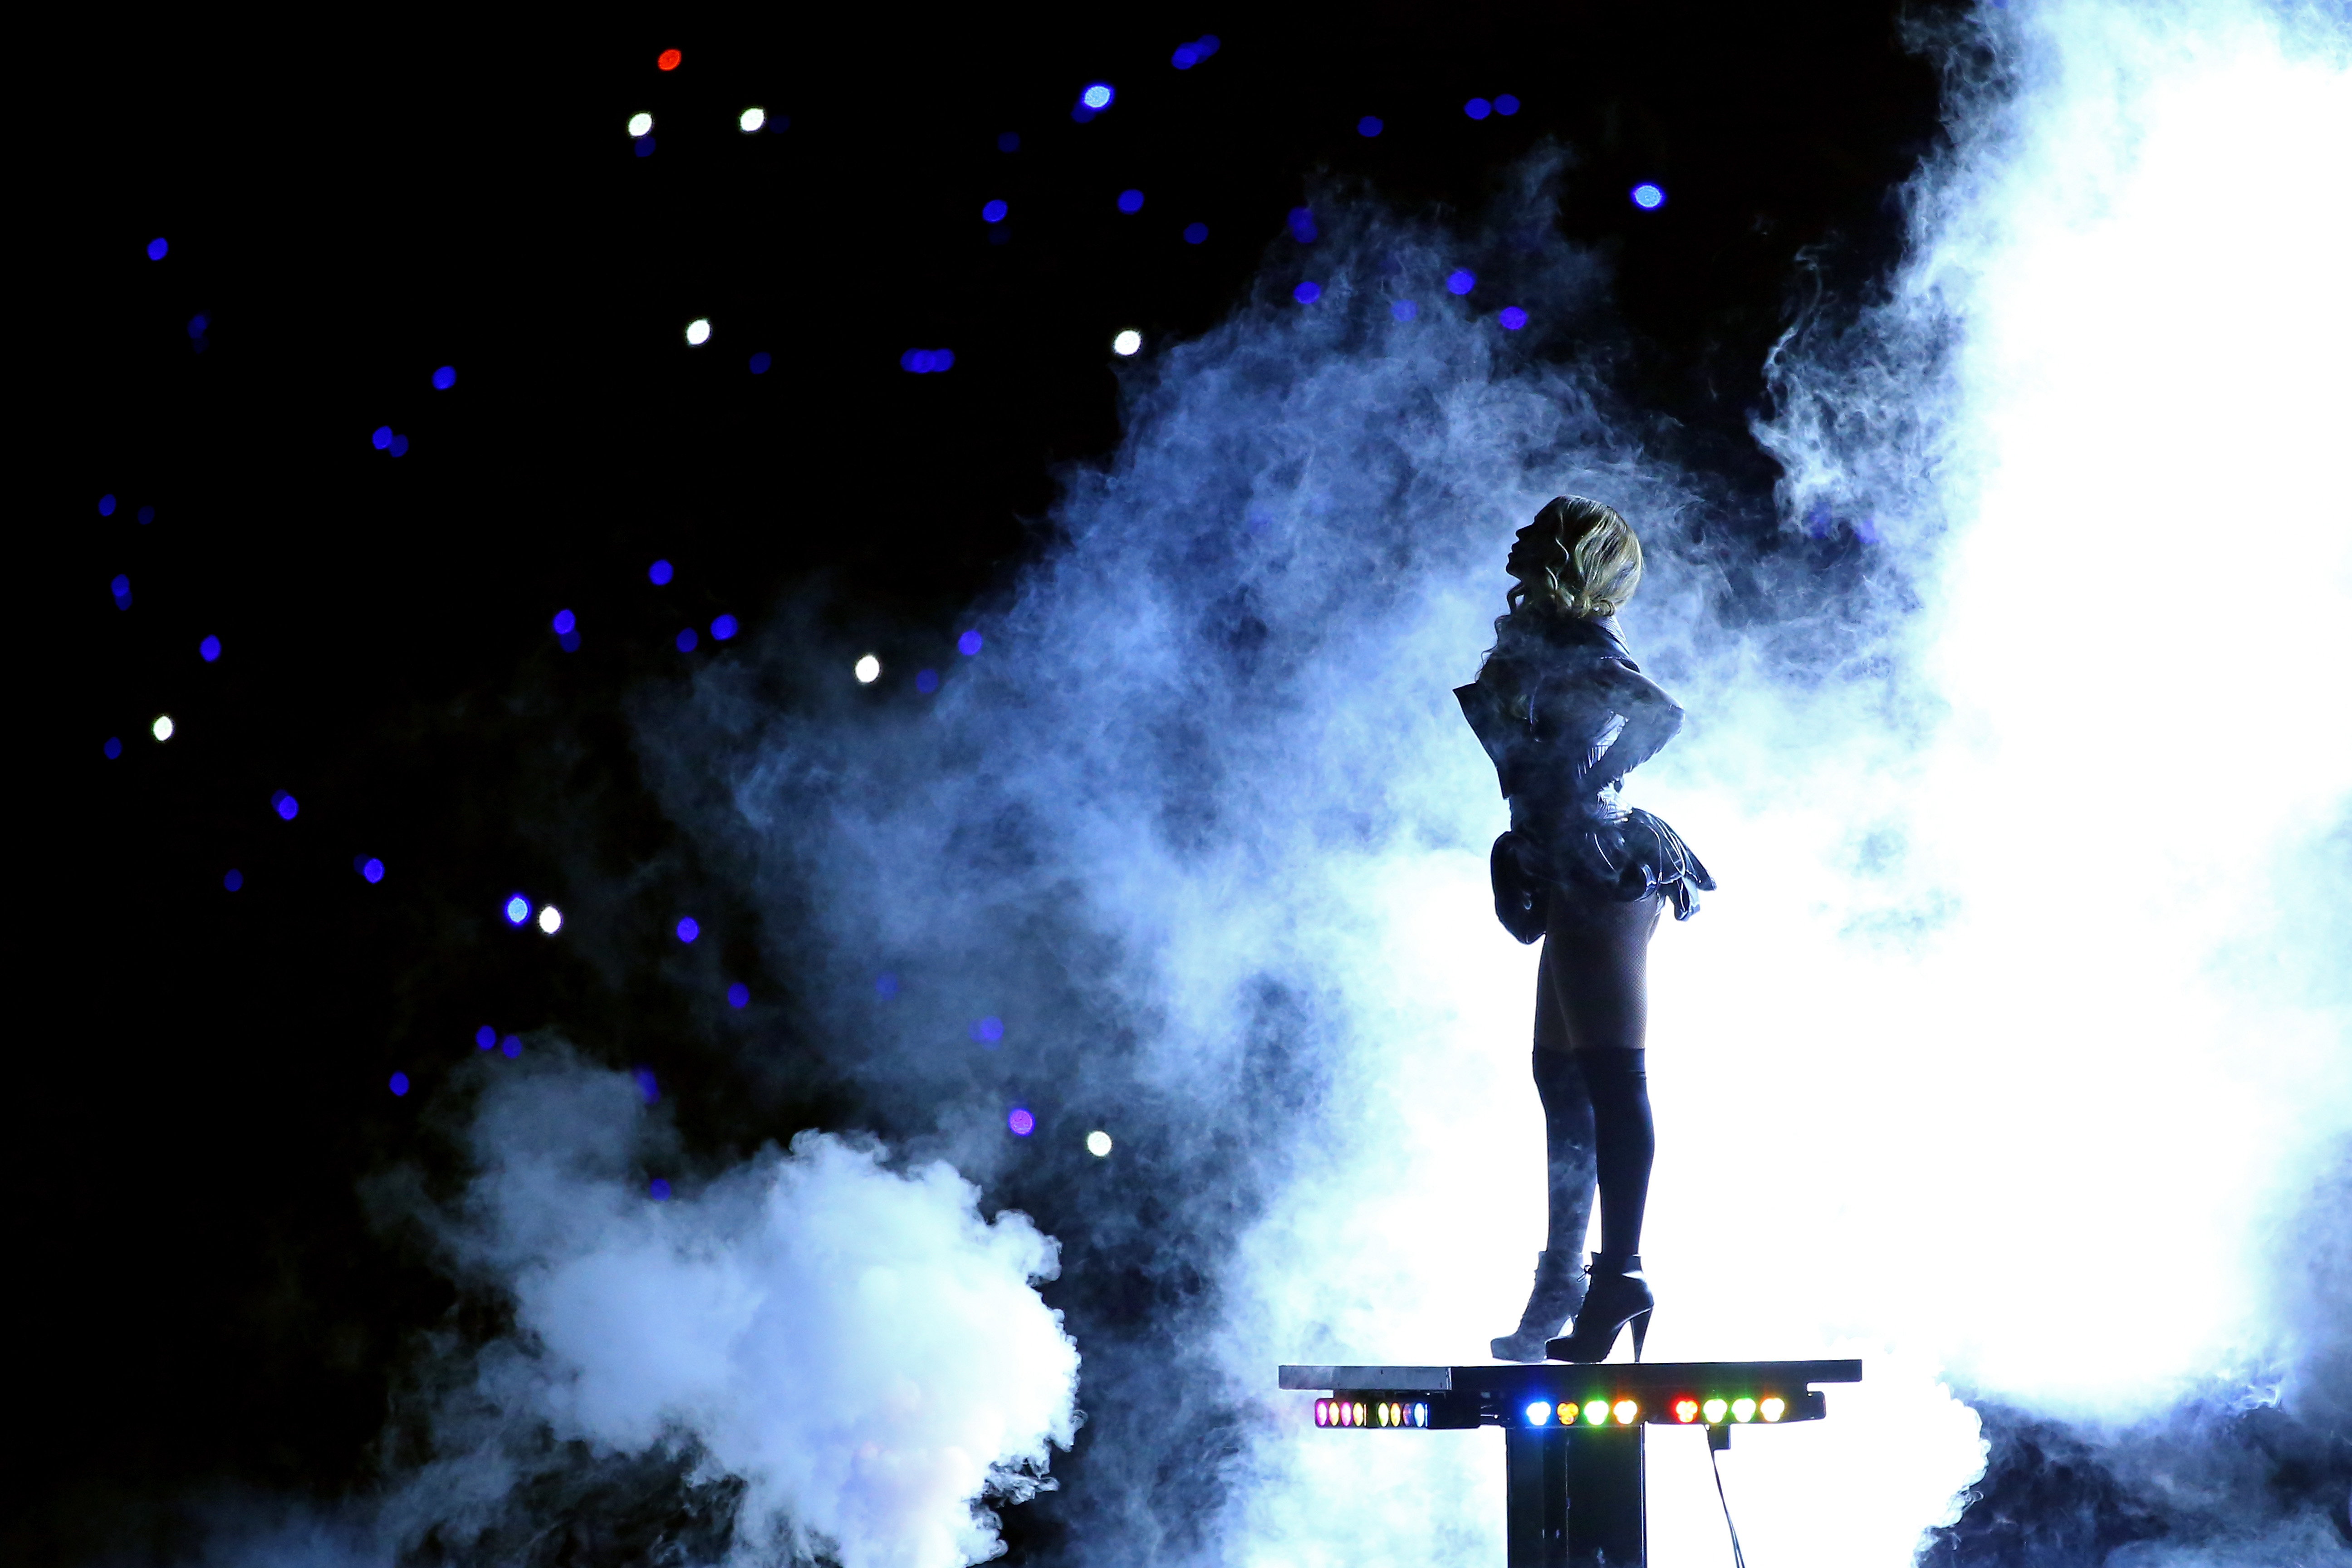 http://theviralmedialab.org/wp-content/uploads/2013/02/Beyonce-Super-Bowl-21.jpg